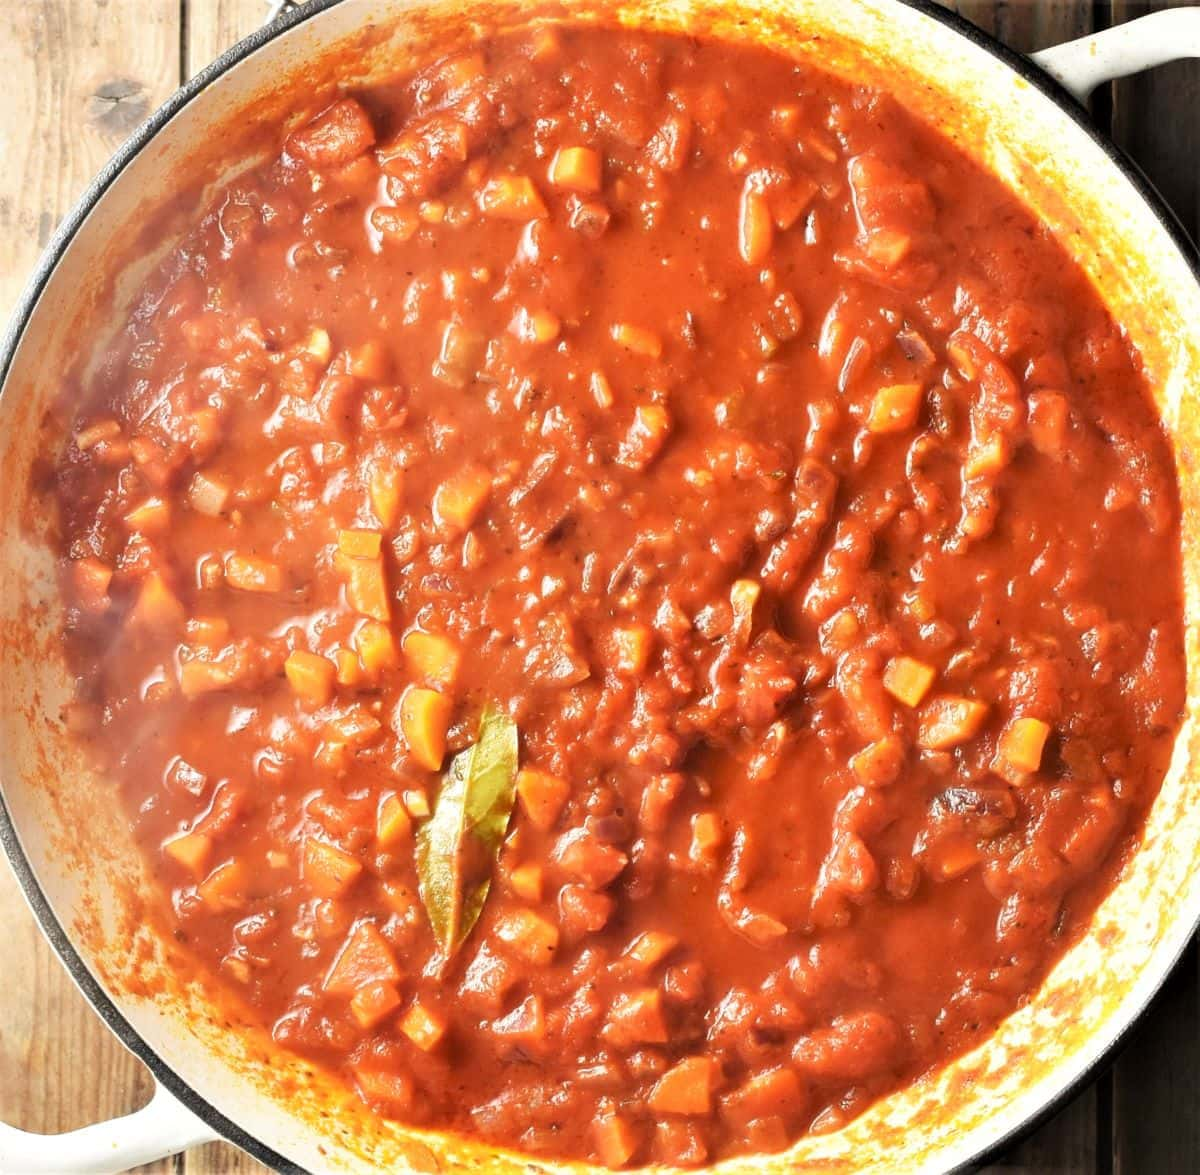 Tomato vegetable sauce in large white pan.